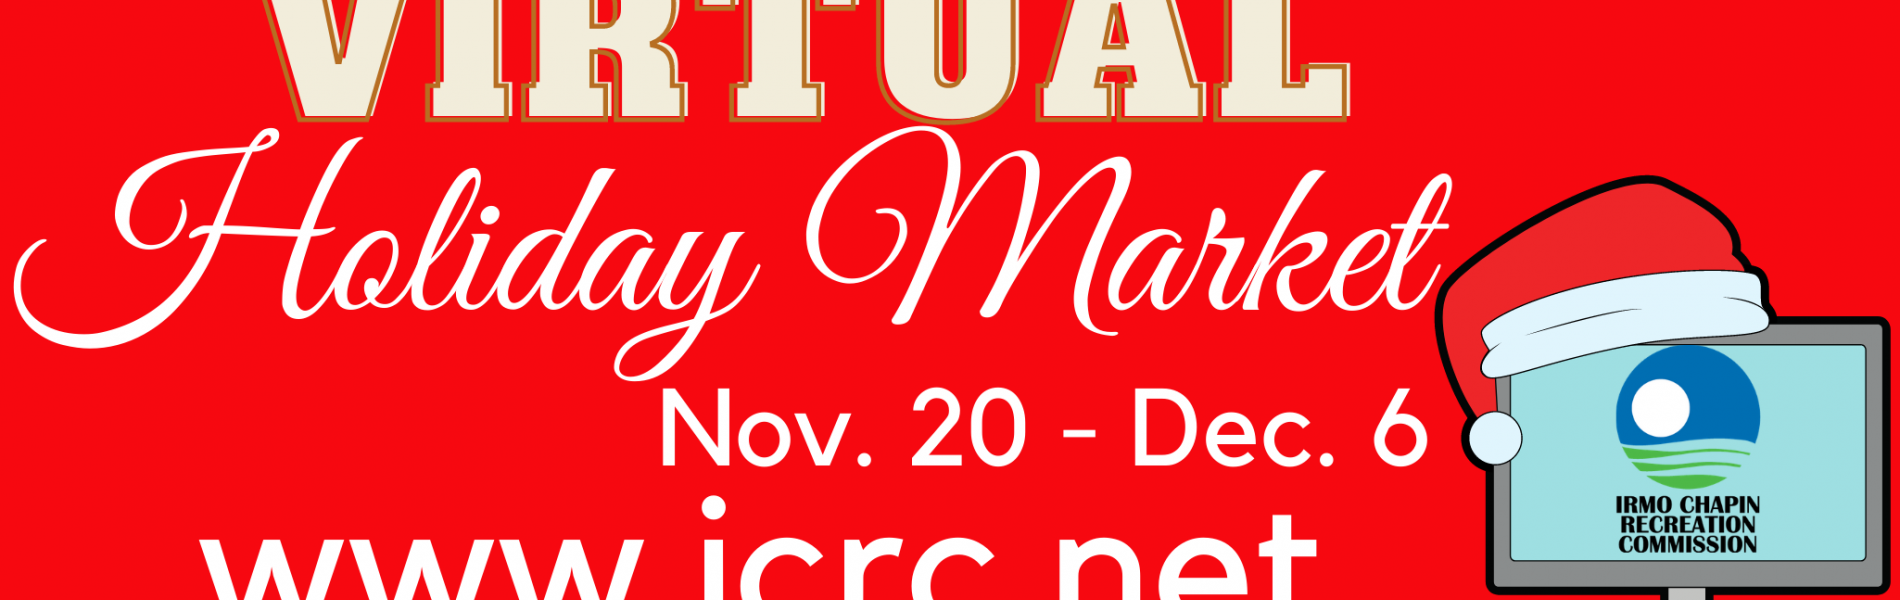 Virtual Holiday Market